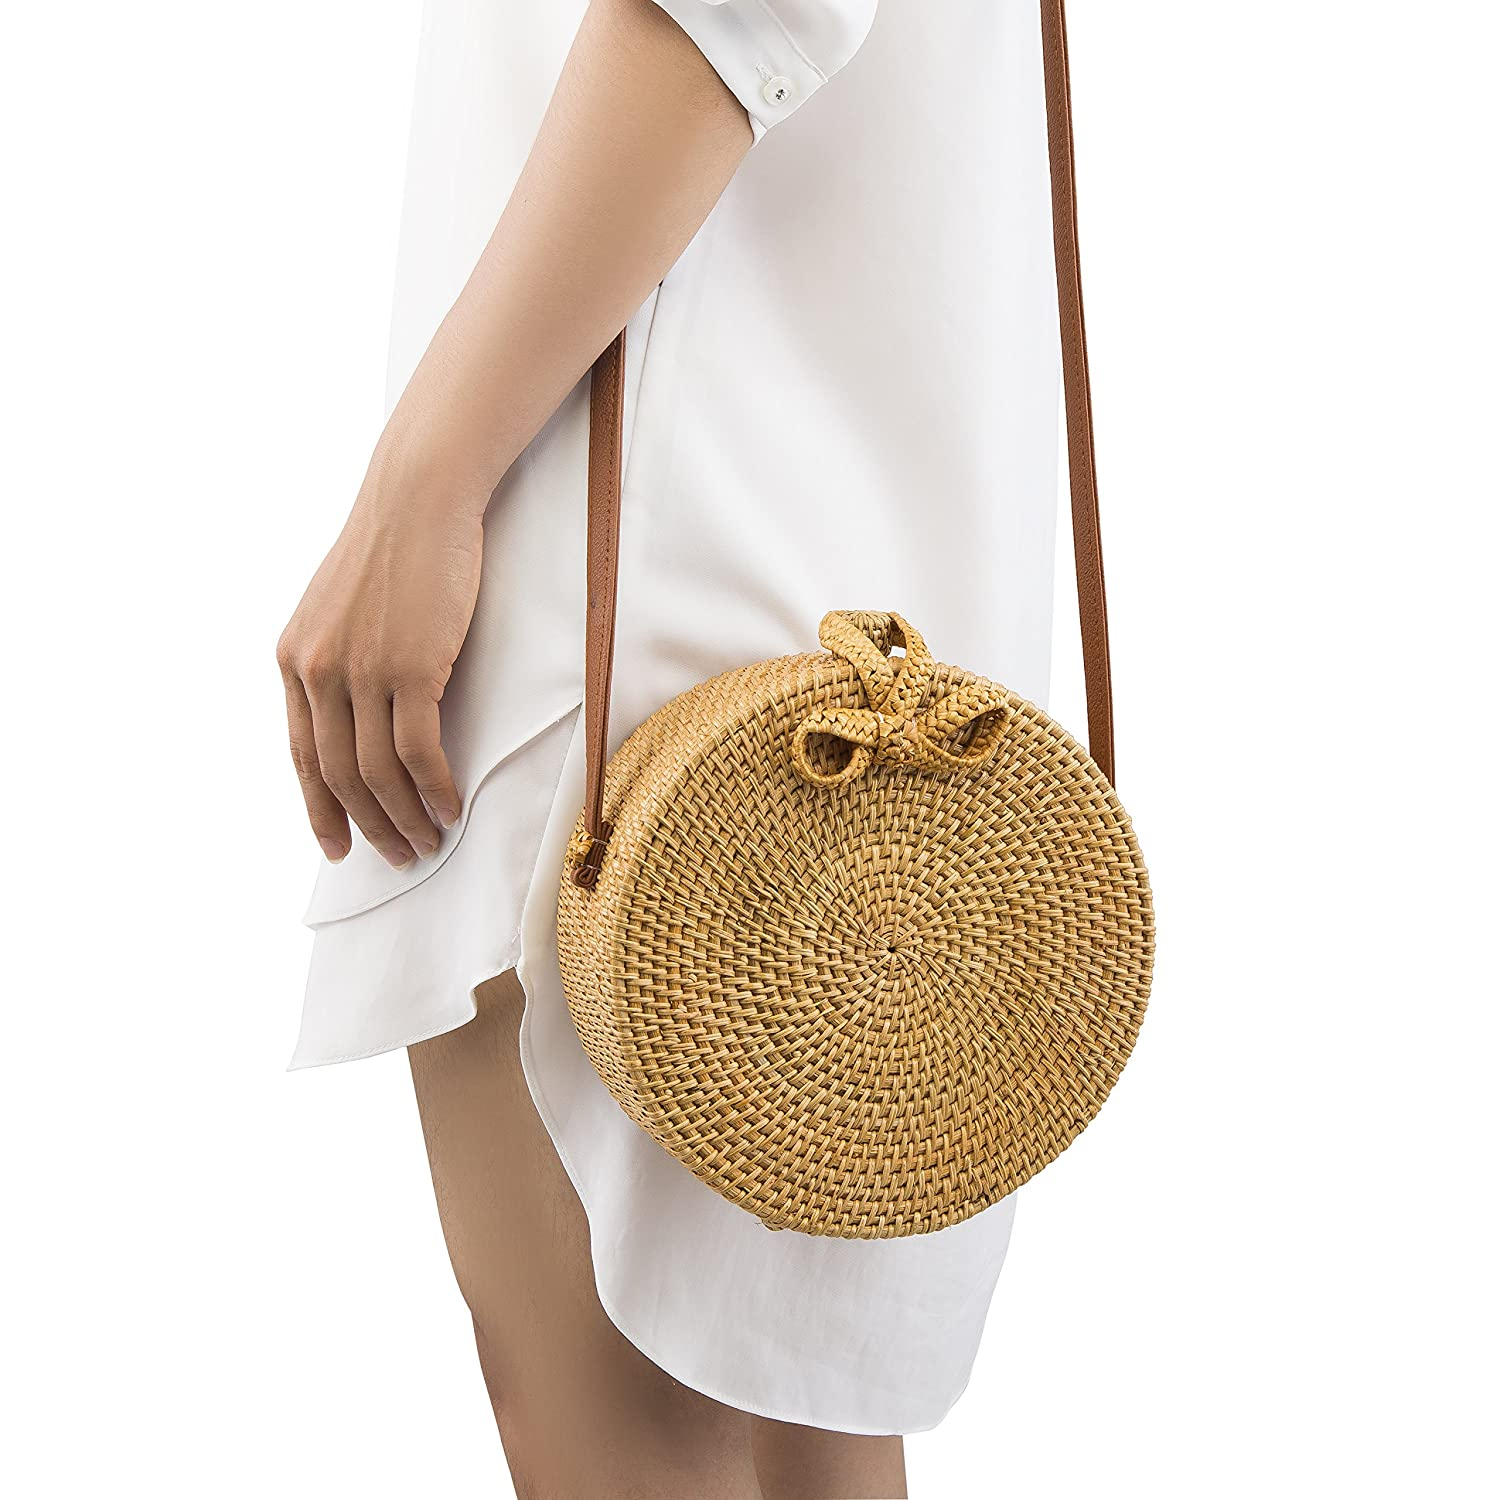 Handwoven Round Rattan Bag Shoulder Leather Straps Natural Chic Hand Naturalneo by Natural Neo